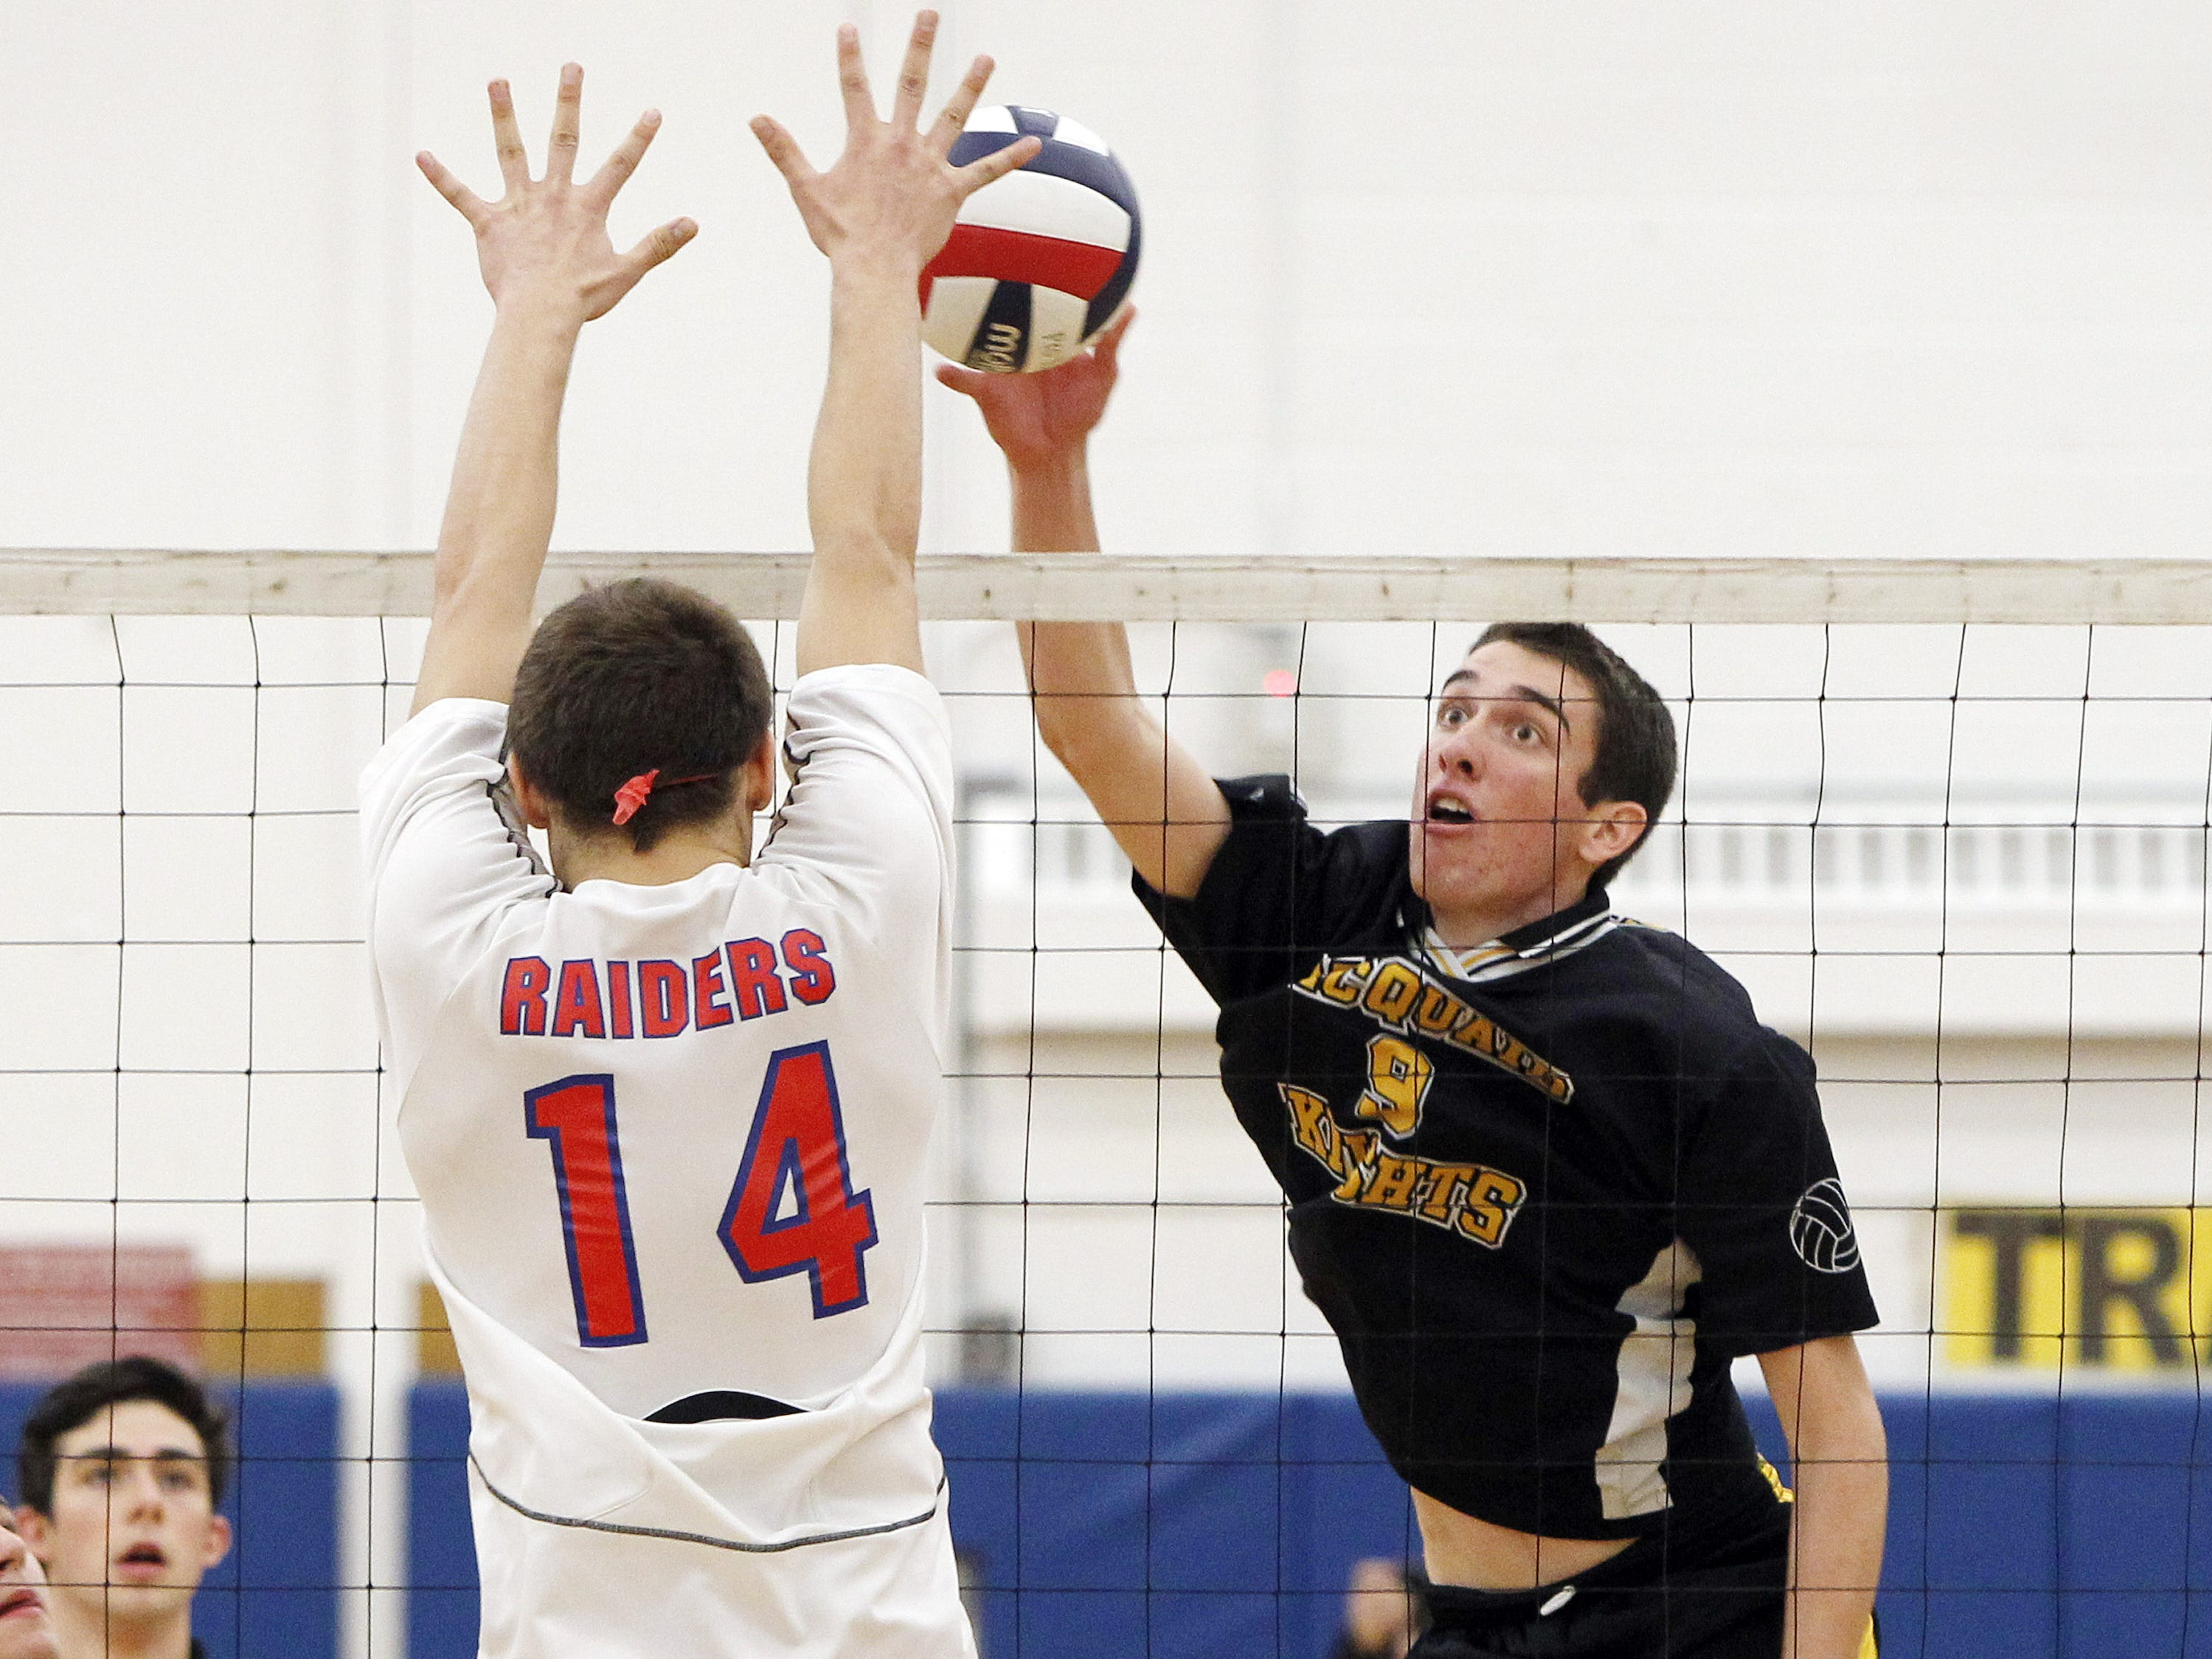 McQuaid's Colin Murphy, right, looks to put a shot past Fairport's Josh Holm during Section V Class A boys volleyball championship action between the McQuaid Jesuit Knights and the Fairport Red Raiders at Webster Schroeder high school Thursday evening, November 7, 2013.